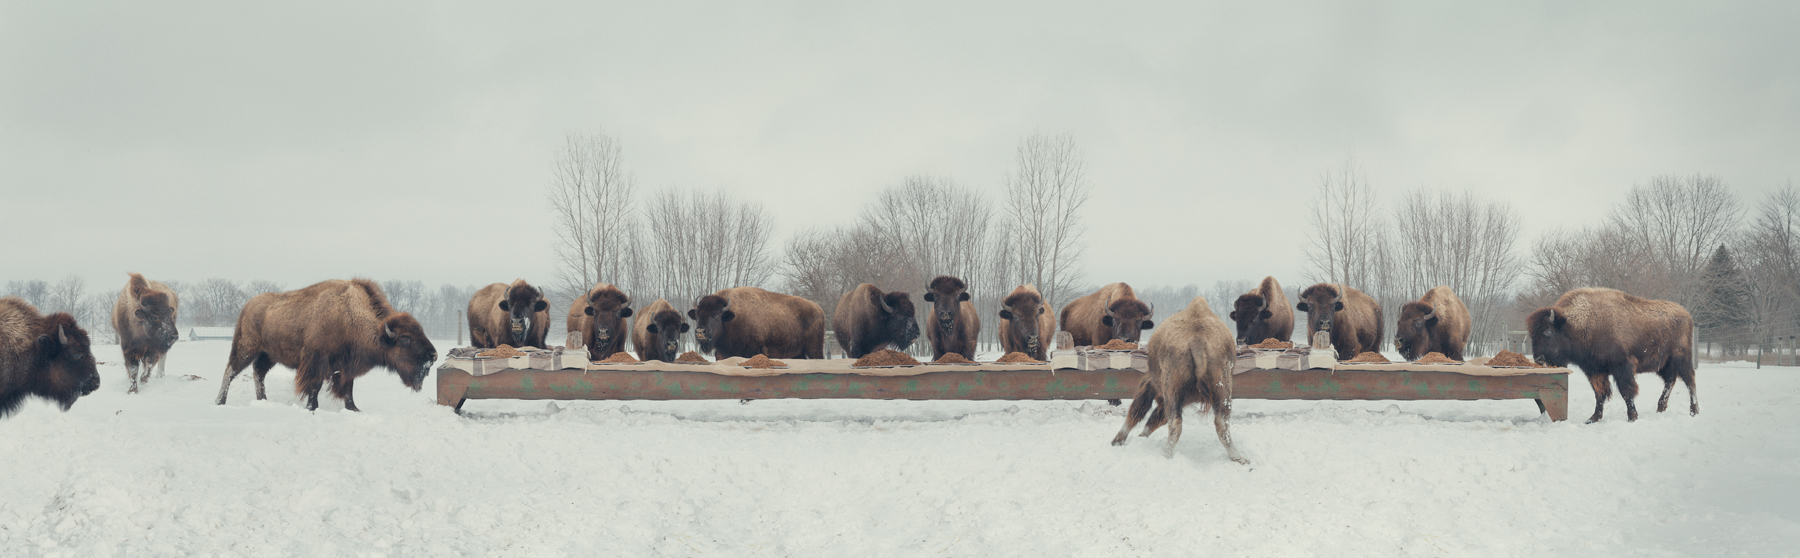 """The Bison Feast  United States, 2014  10""""x32"""" 